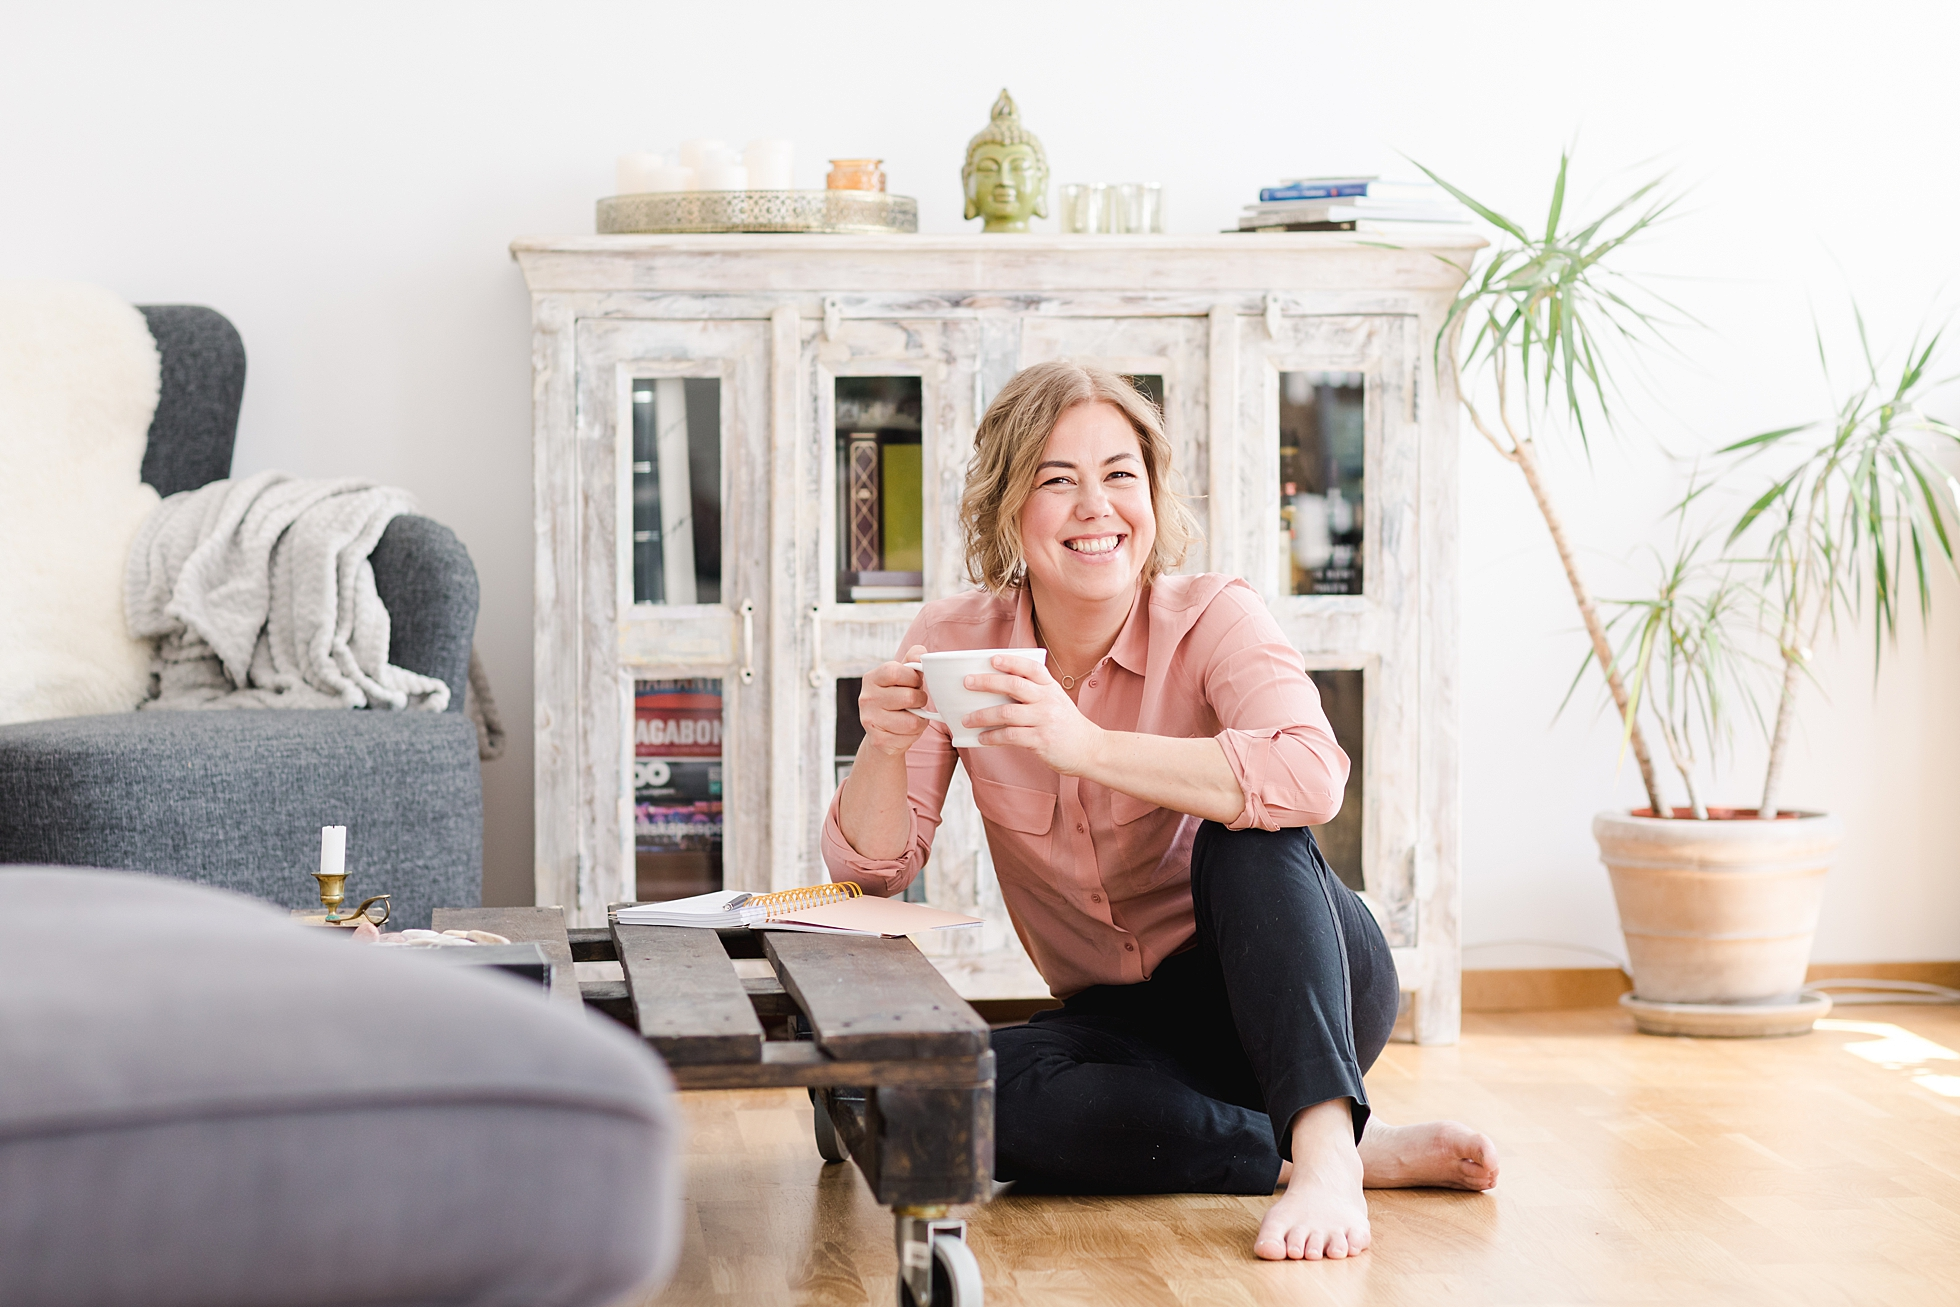 A business woman smiling, holding a cup of coffee